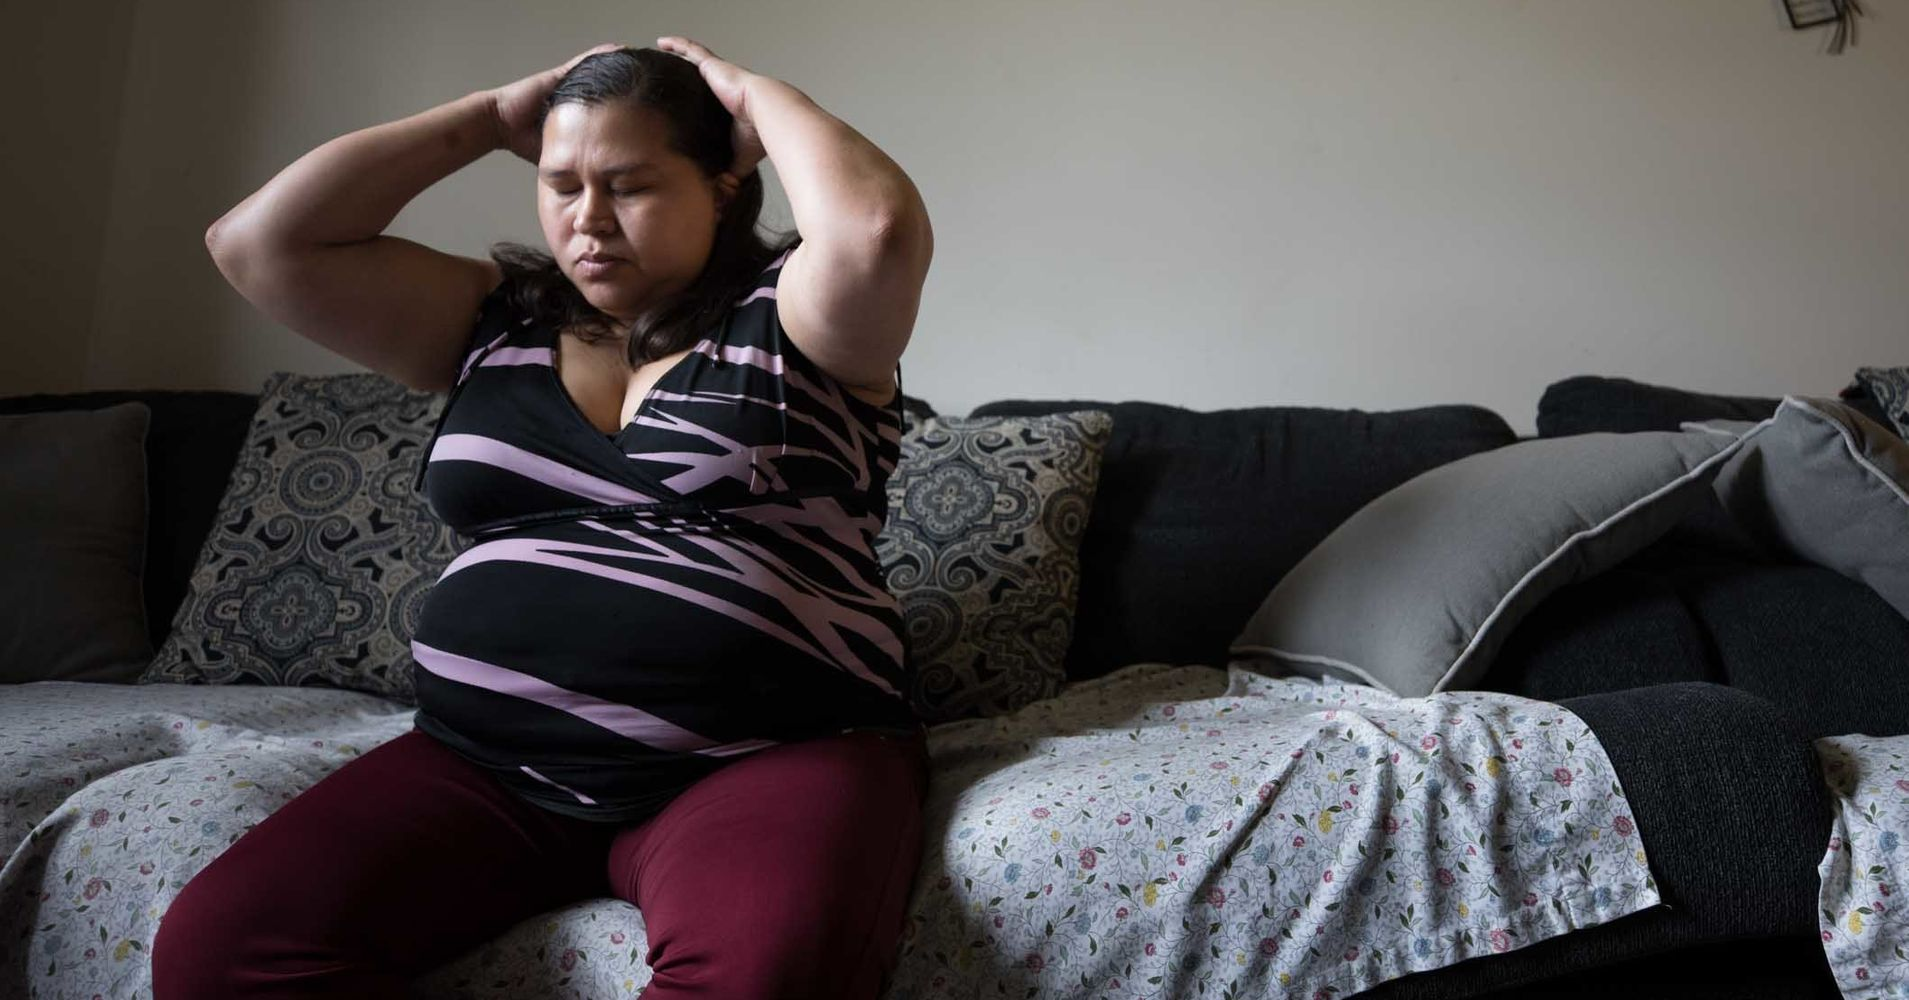 She Got Asylum After Her Partner Shot Her. Now The U.S. Would Turn Her Away.